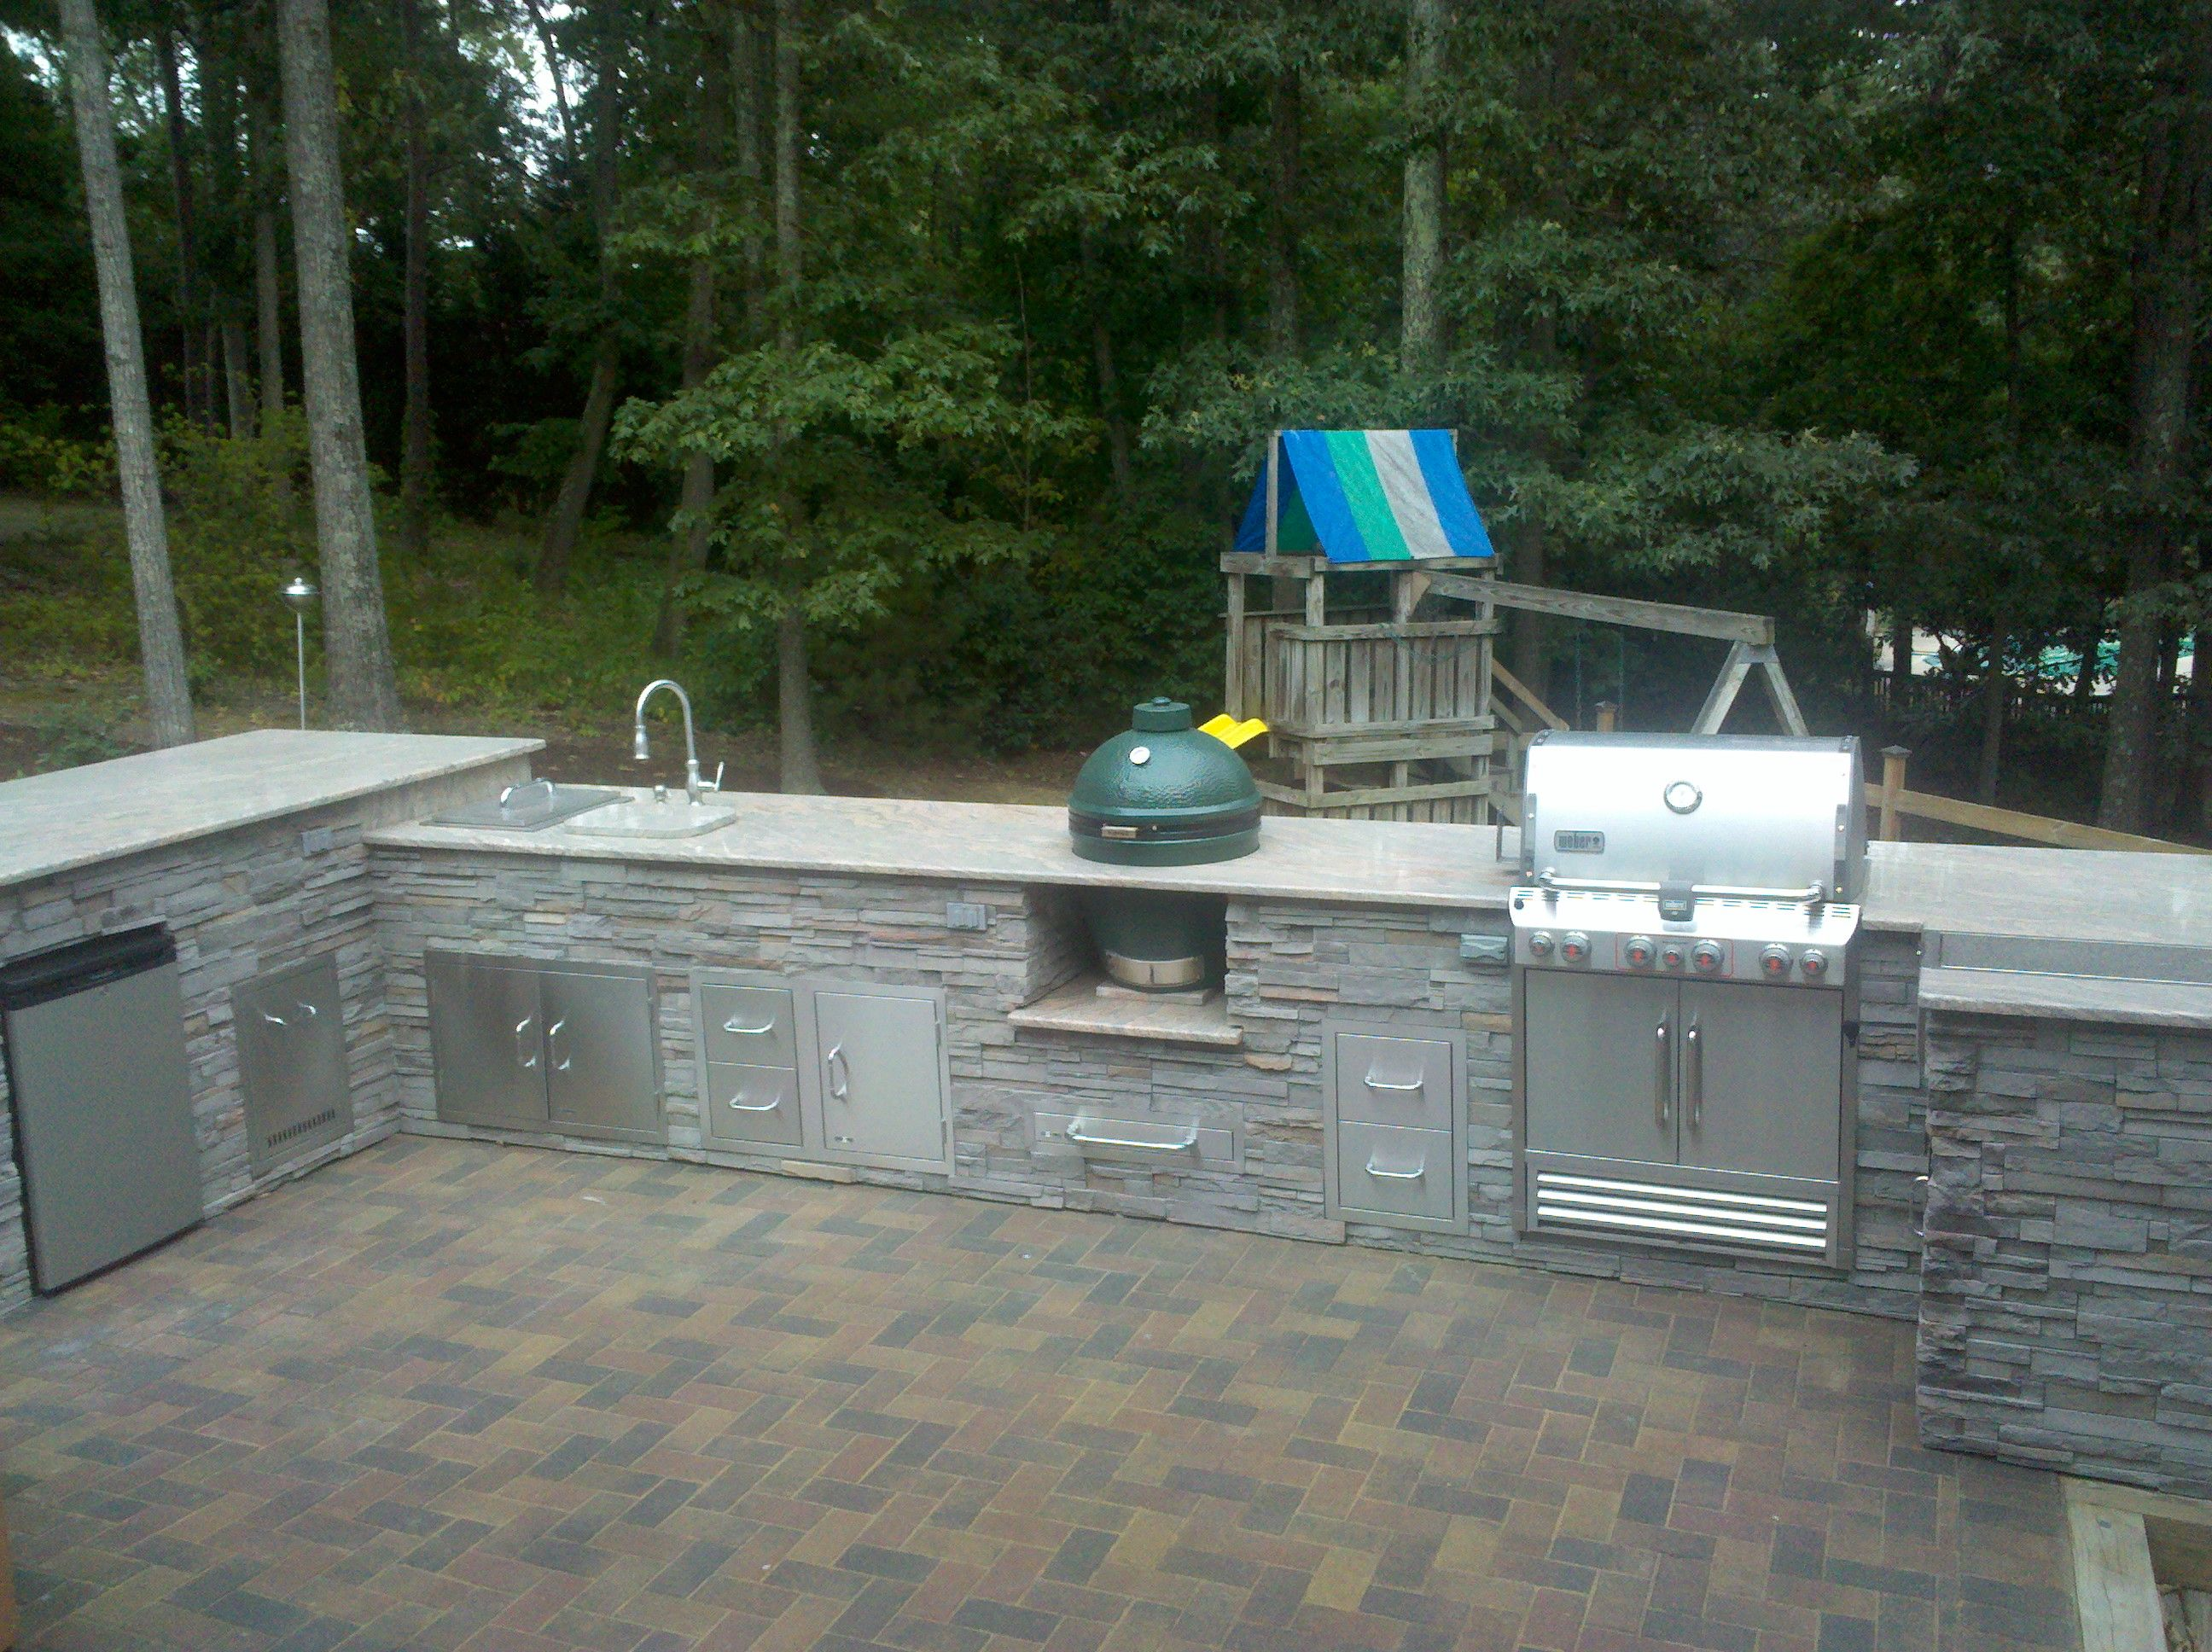 Outdoor Kitchen White Plains Md Built In Grill Outdoor Sink Ice Box Storage Compartments Refriger Built In Grill Outdoor Kitchen Outdoor Kitchen Design